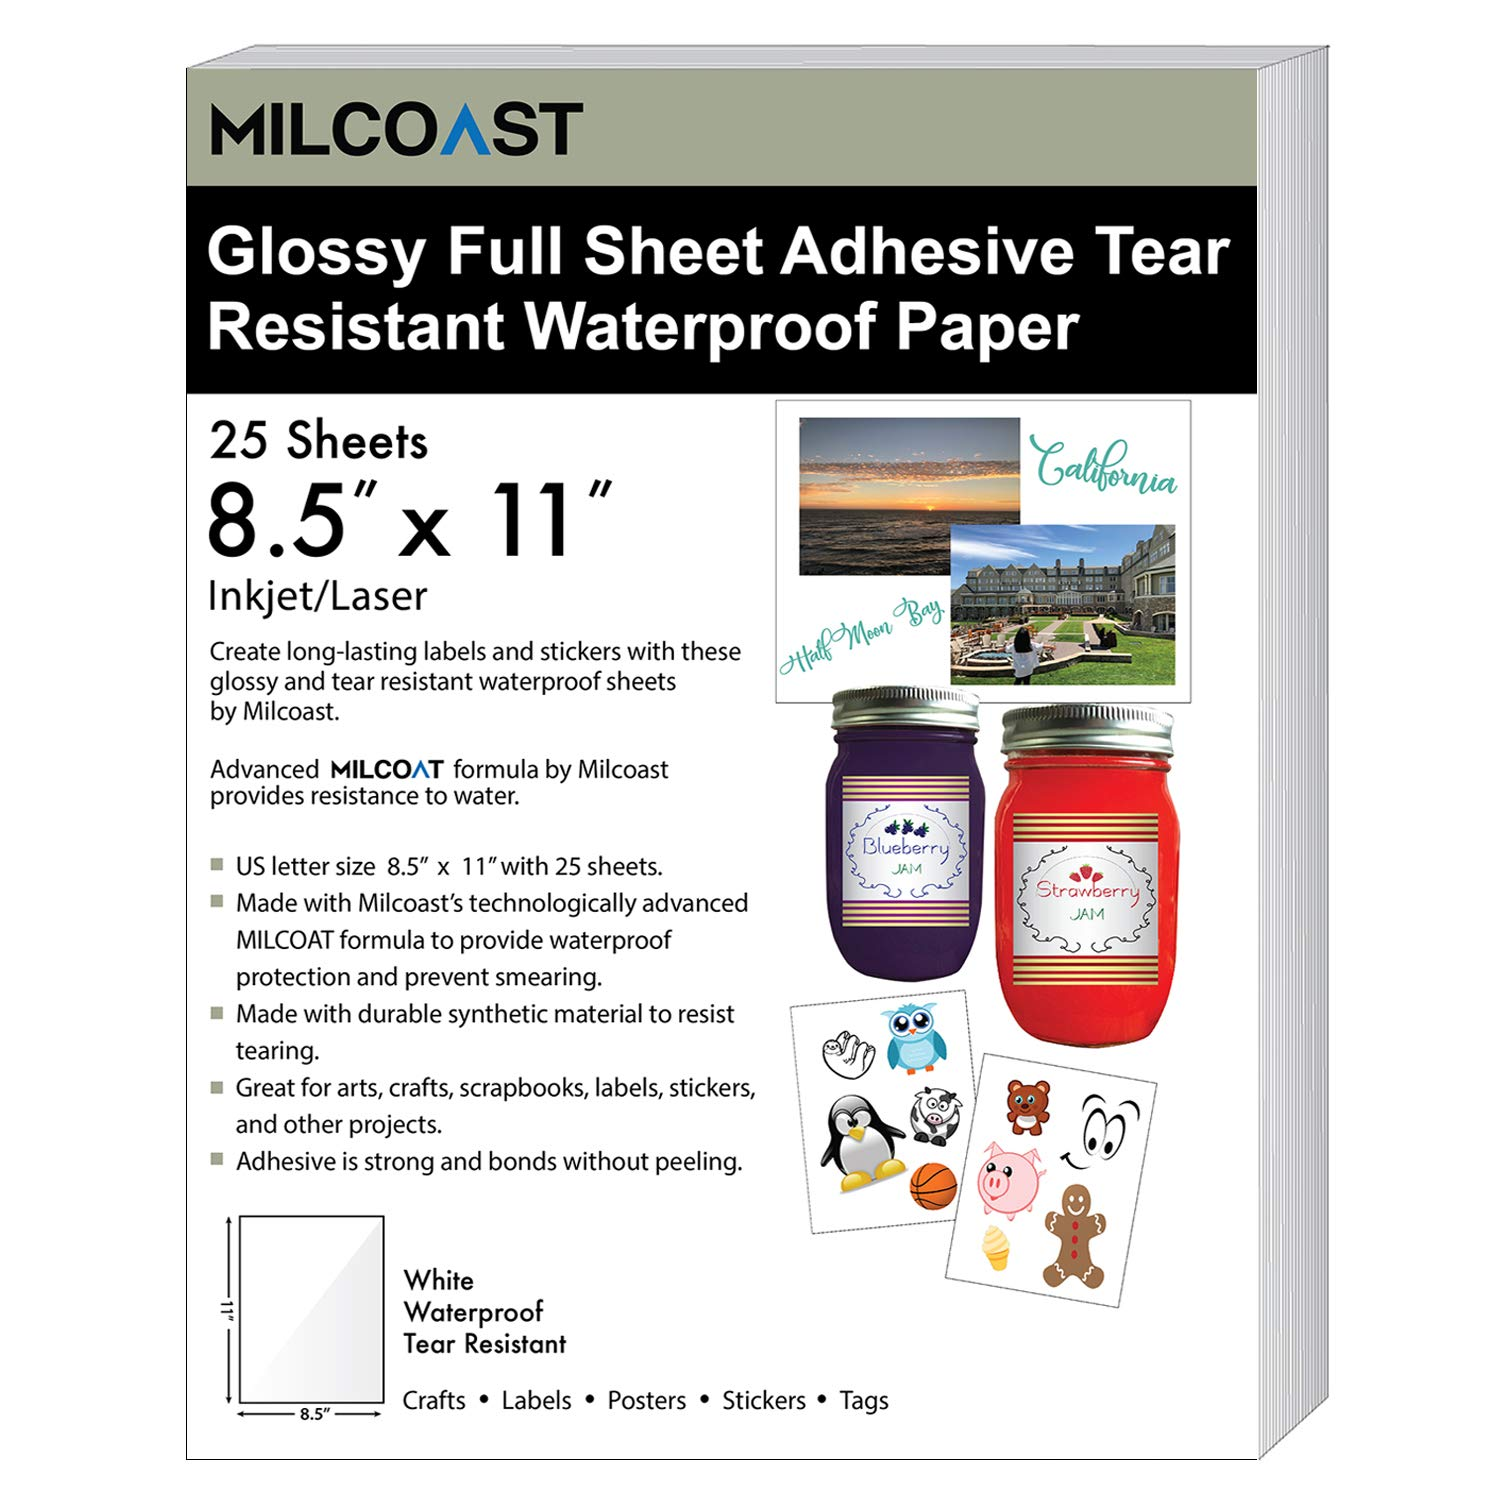 Milcoast Glossy White Full Sheet 8.5'' x 11'' Adhesive Tear Resistant Waterproof Photo Craft Paper - for Inkjet/Laser Printers - for Stickers, Labels, Scrapbooks, Bottles, Arts, Crafts (25 Sheets)